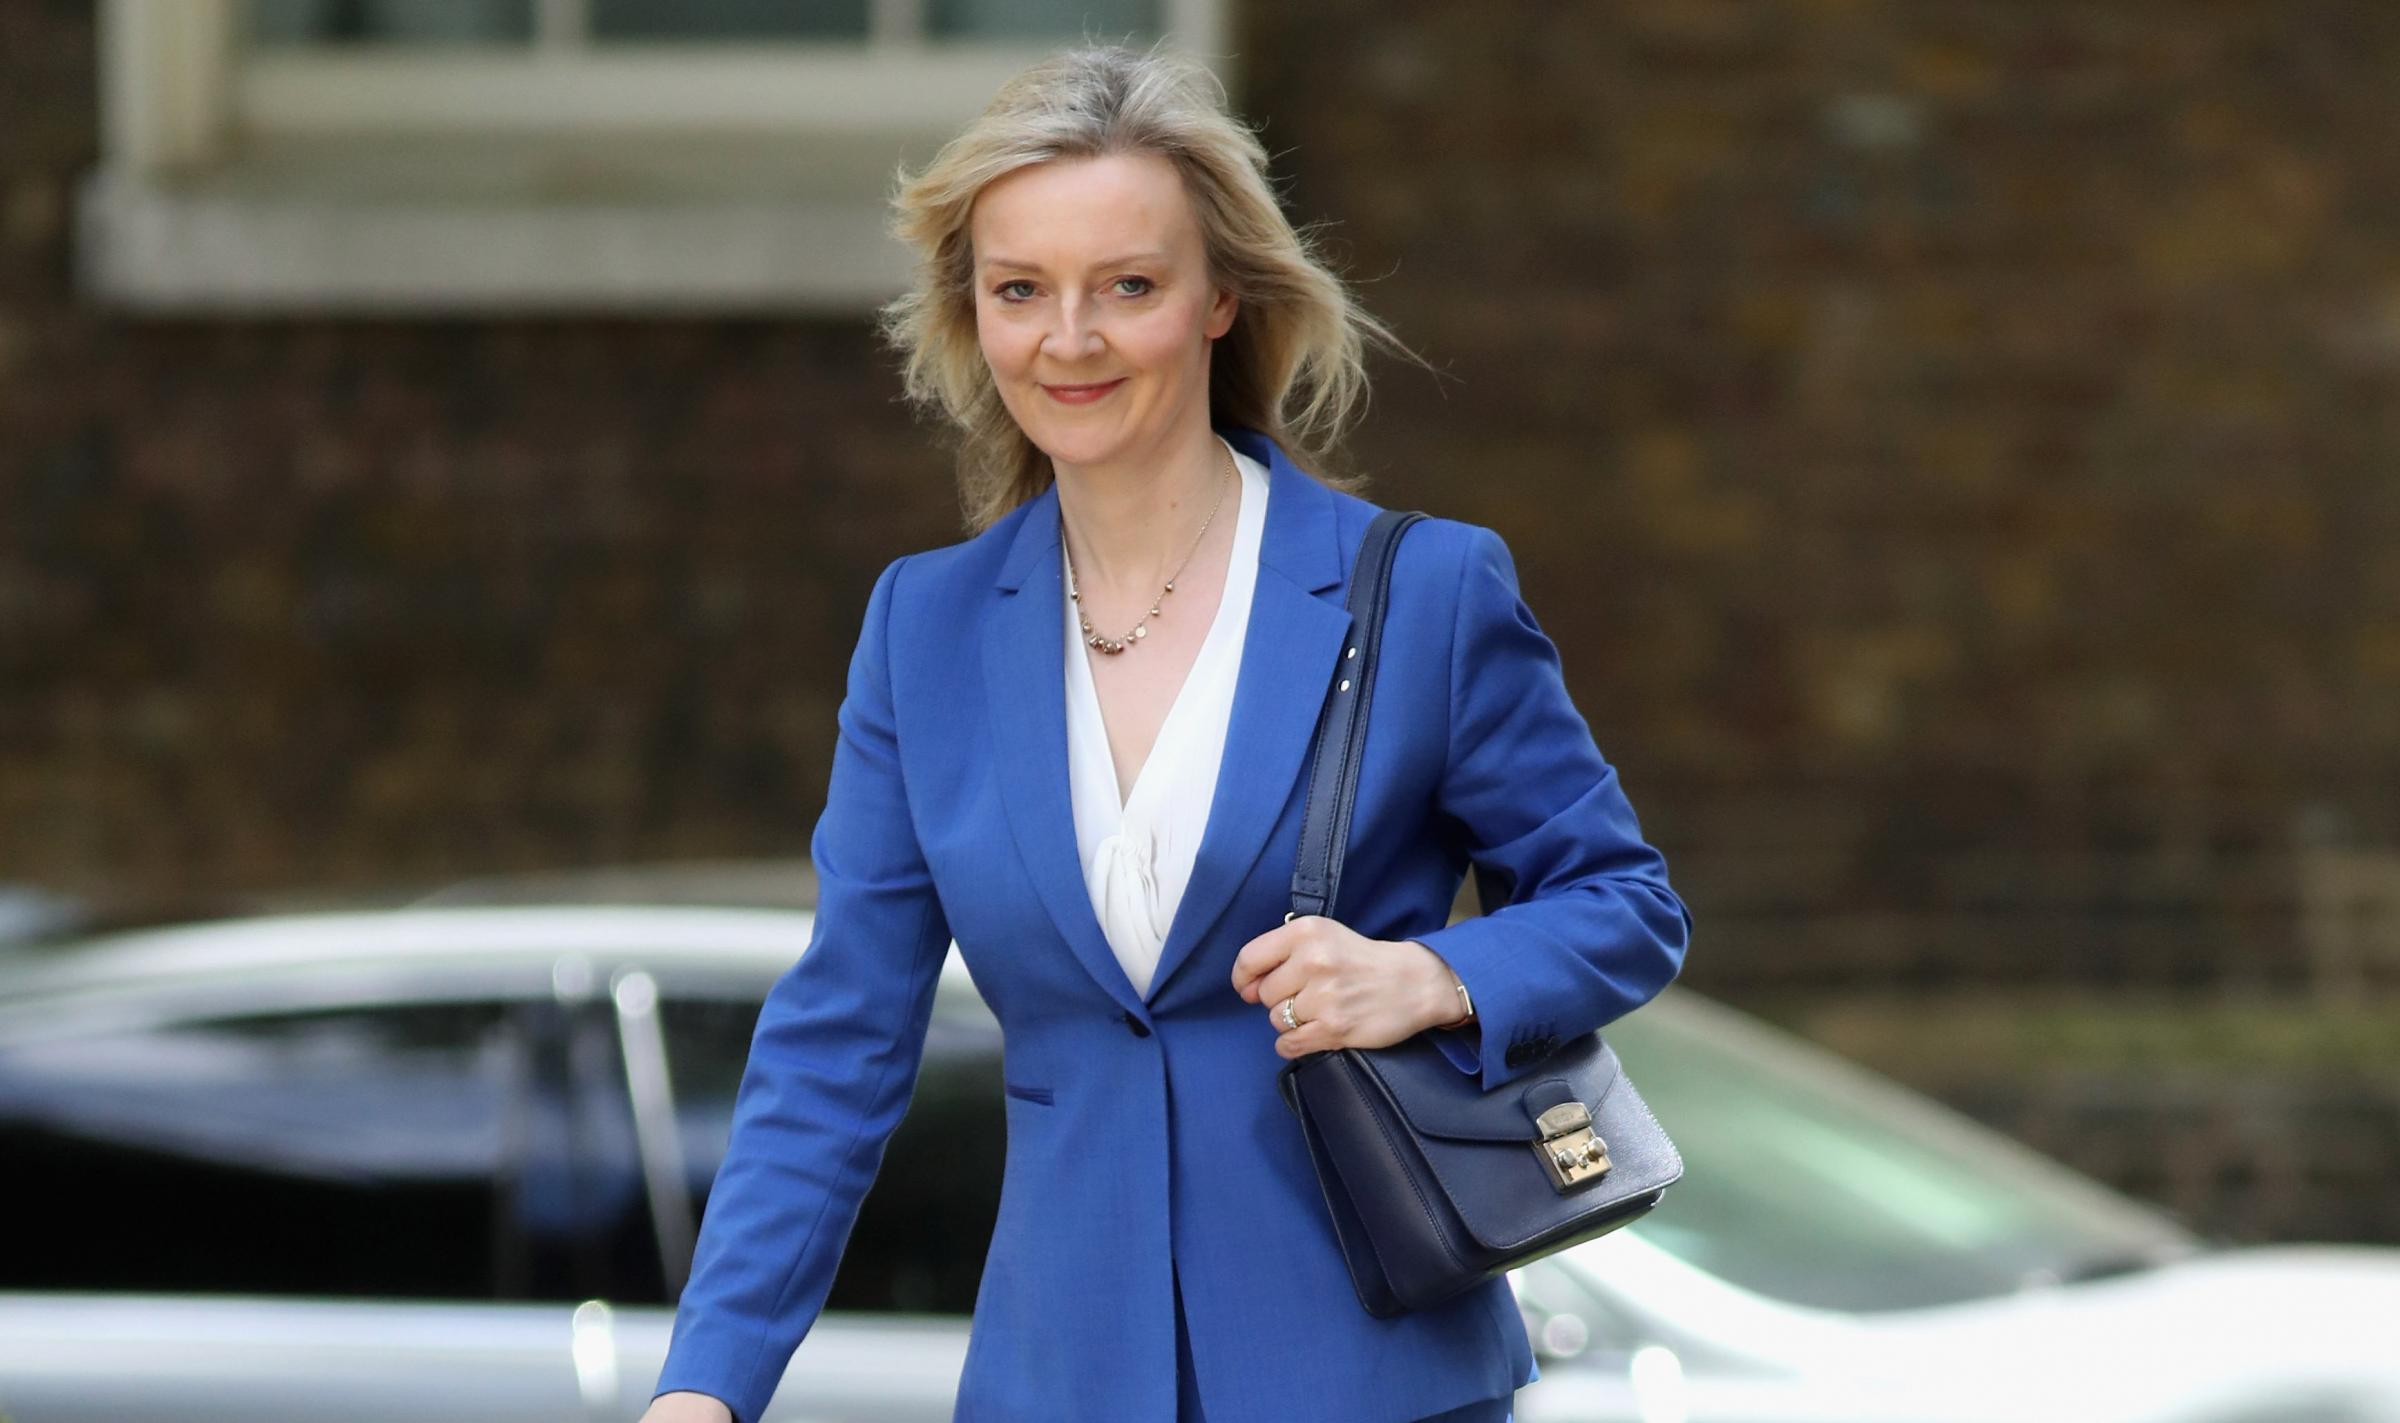 Fact Check: Liz Truss's claims just don't add up